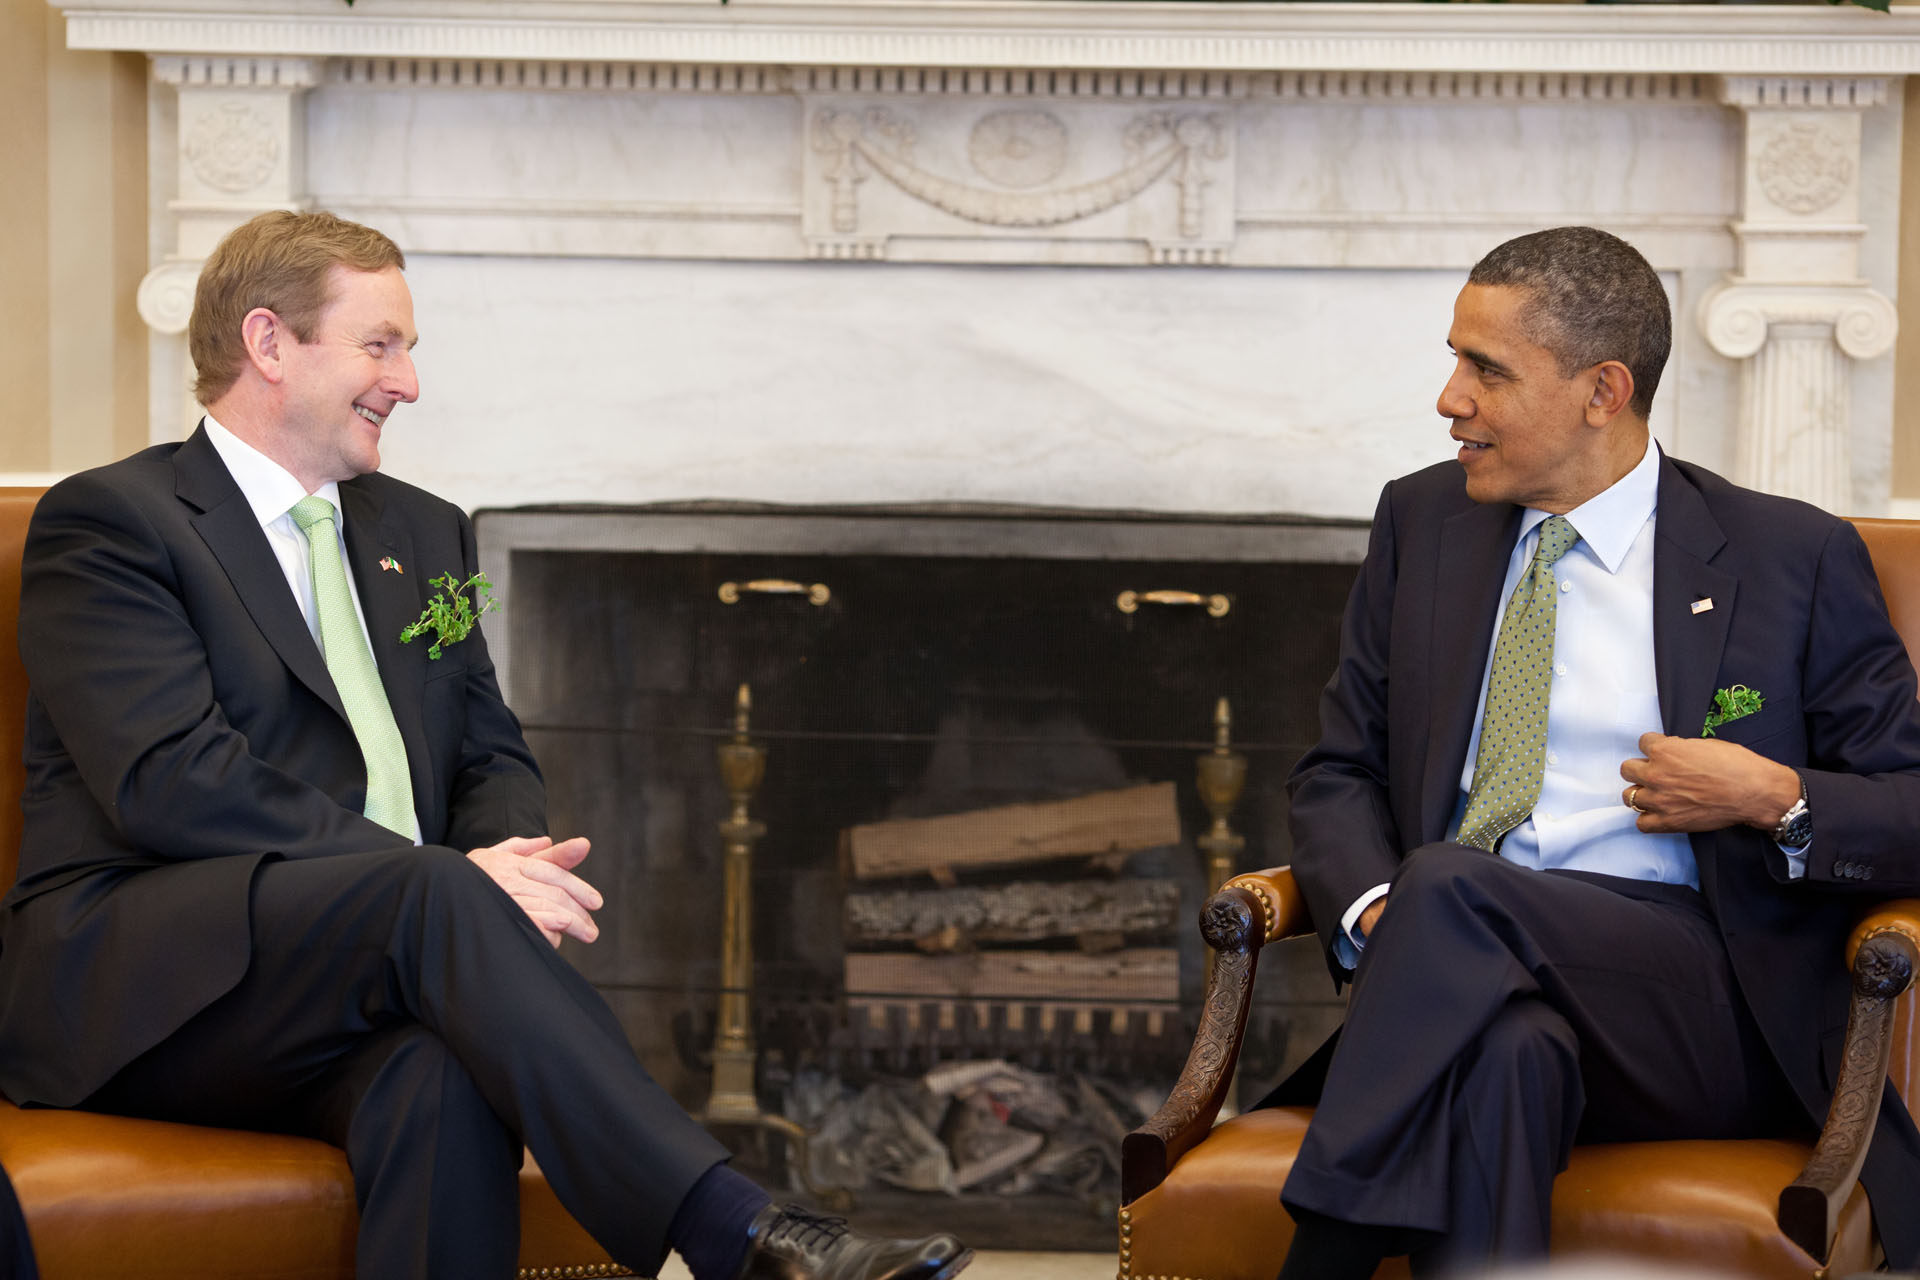 President Barack Obama meets with Taoiseach Enda Kenny of Ireland (March 20, 2012)